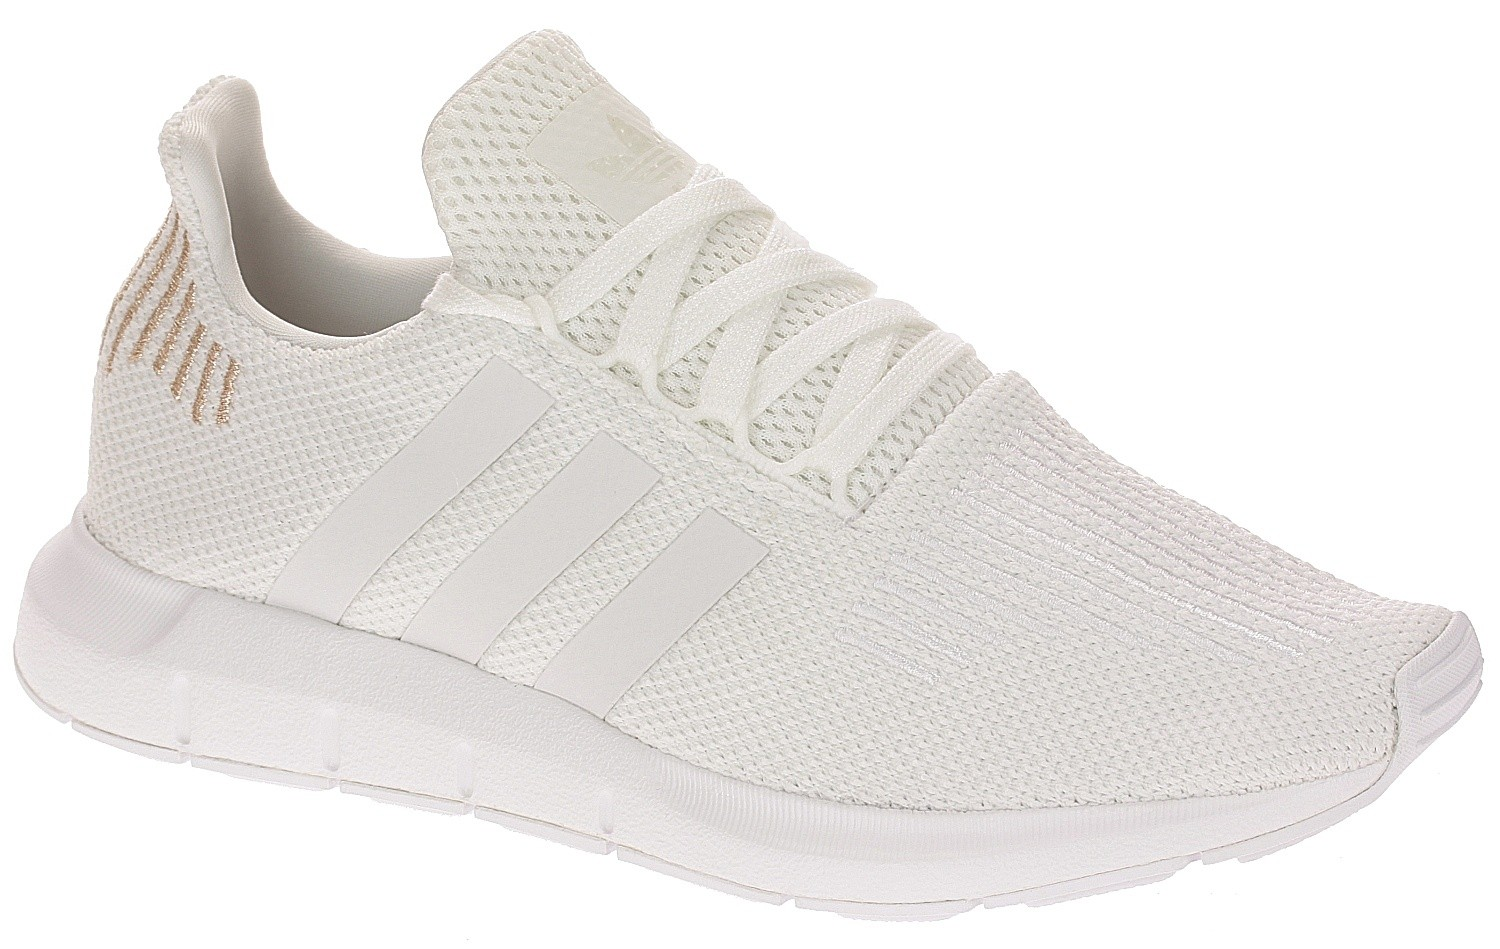 White adidas Run Originals WhiteCrystal Schuhe Swift 5RjS4AcL3q